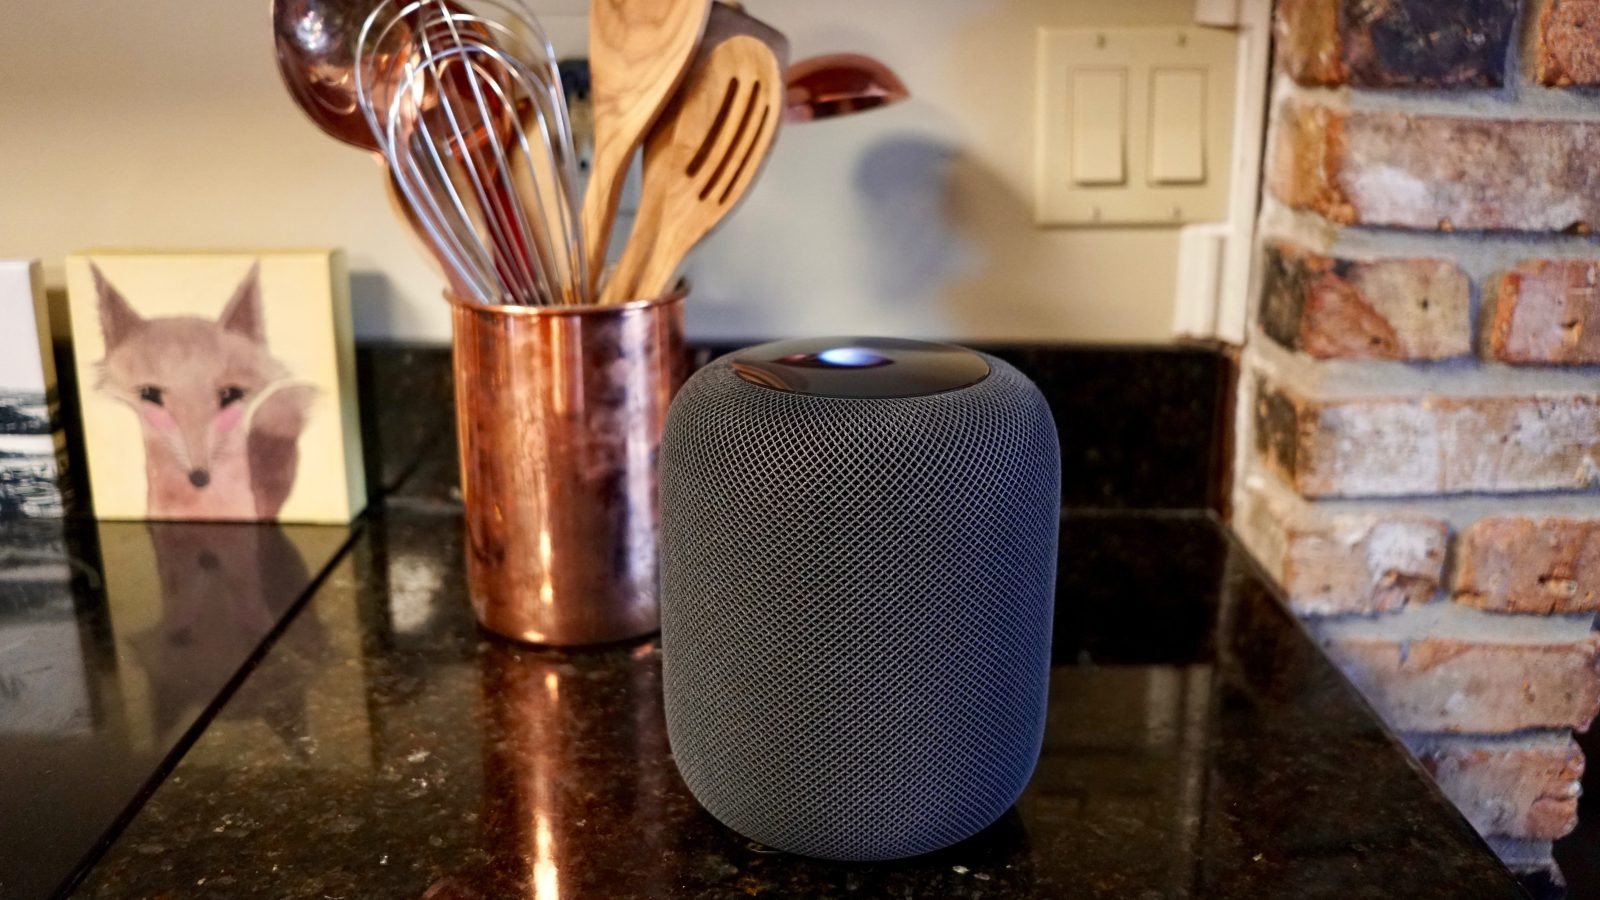 hand turned wooden vases of review homepod today tomorrow and beyond may not be the same pertaining to review homepod today tomorrow and beyond may not be the same smart speaker